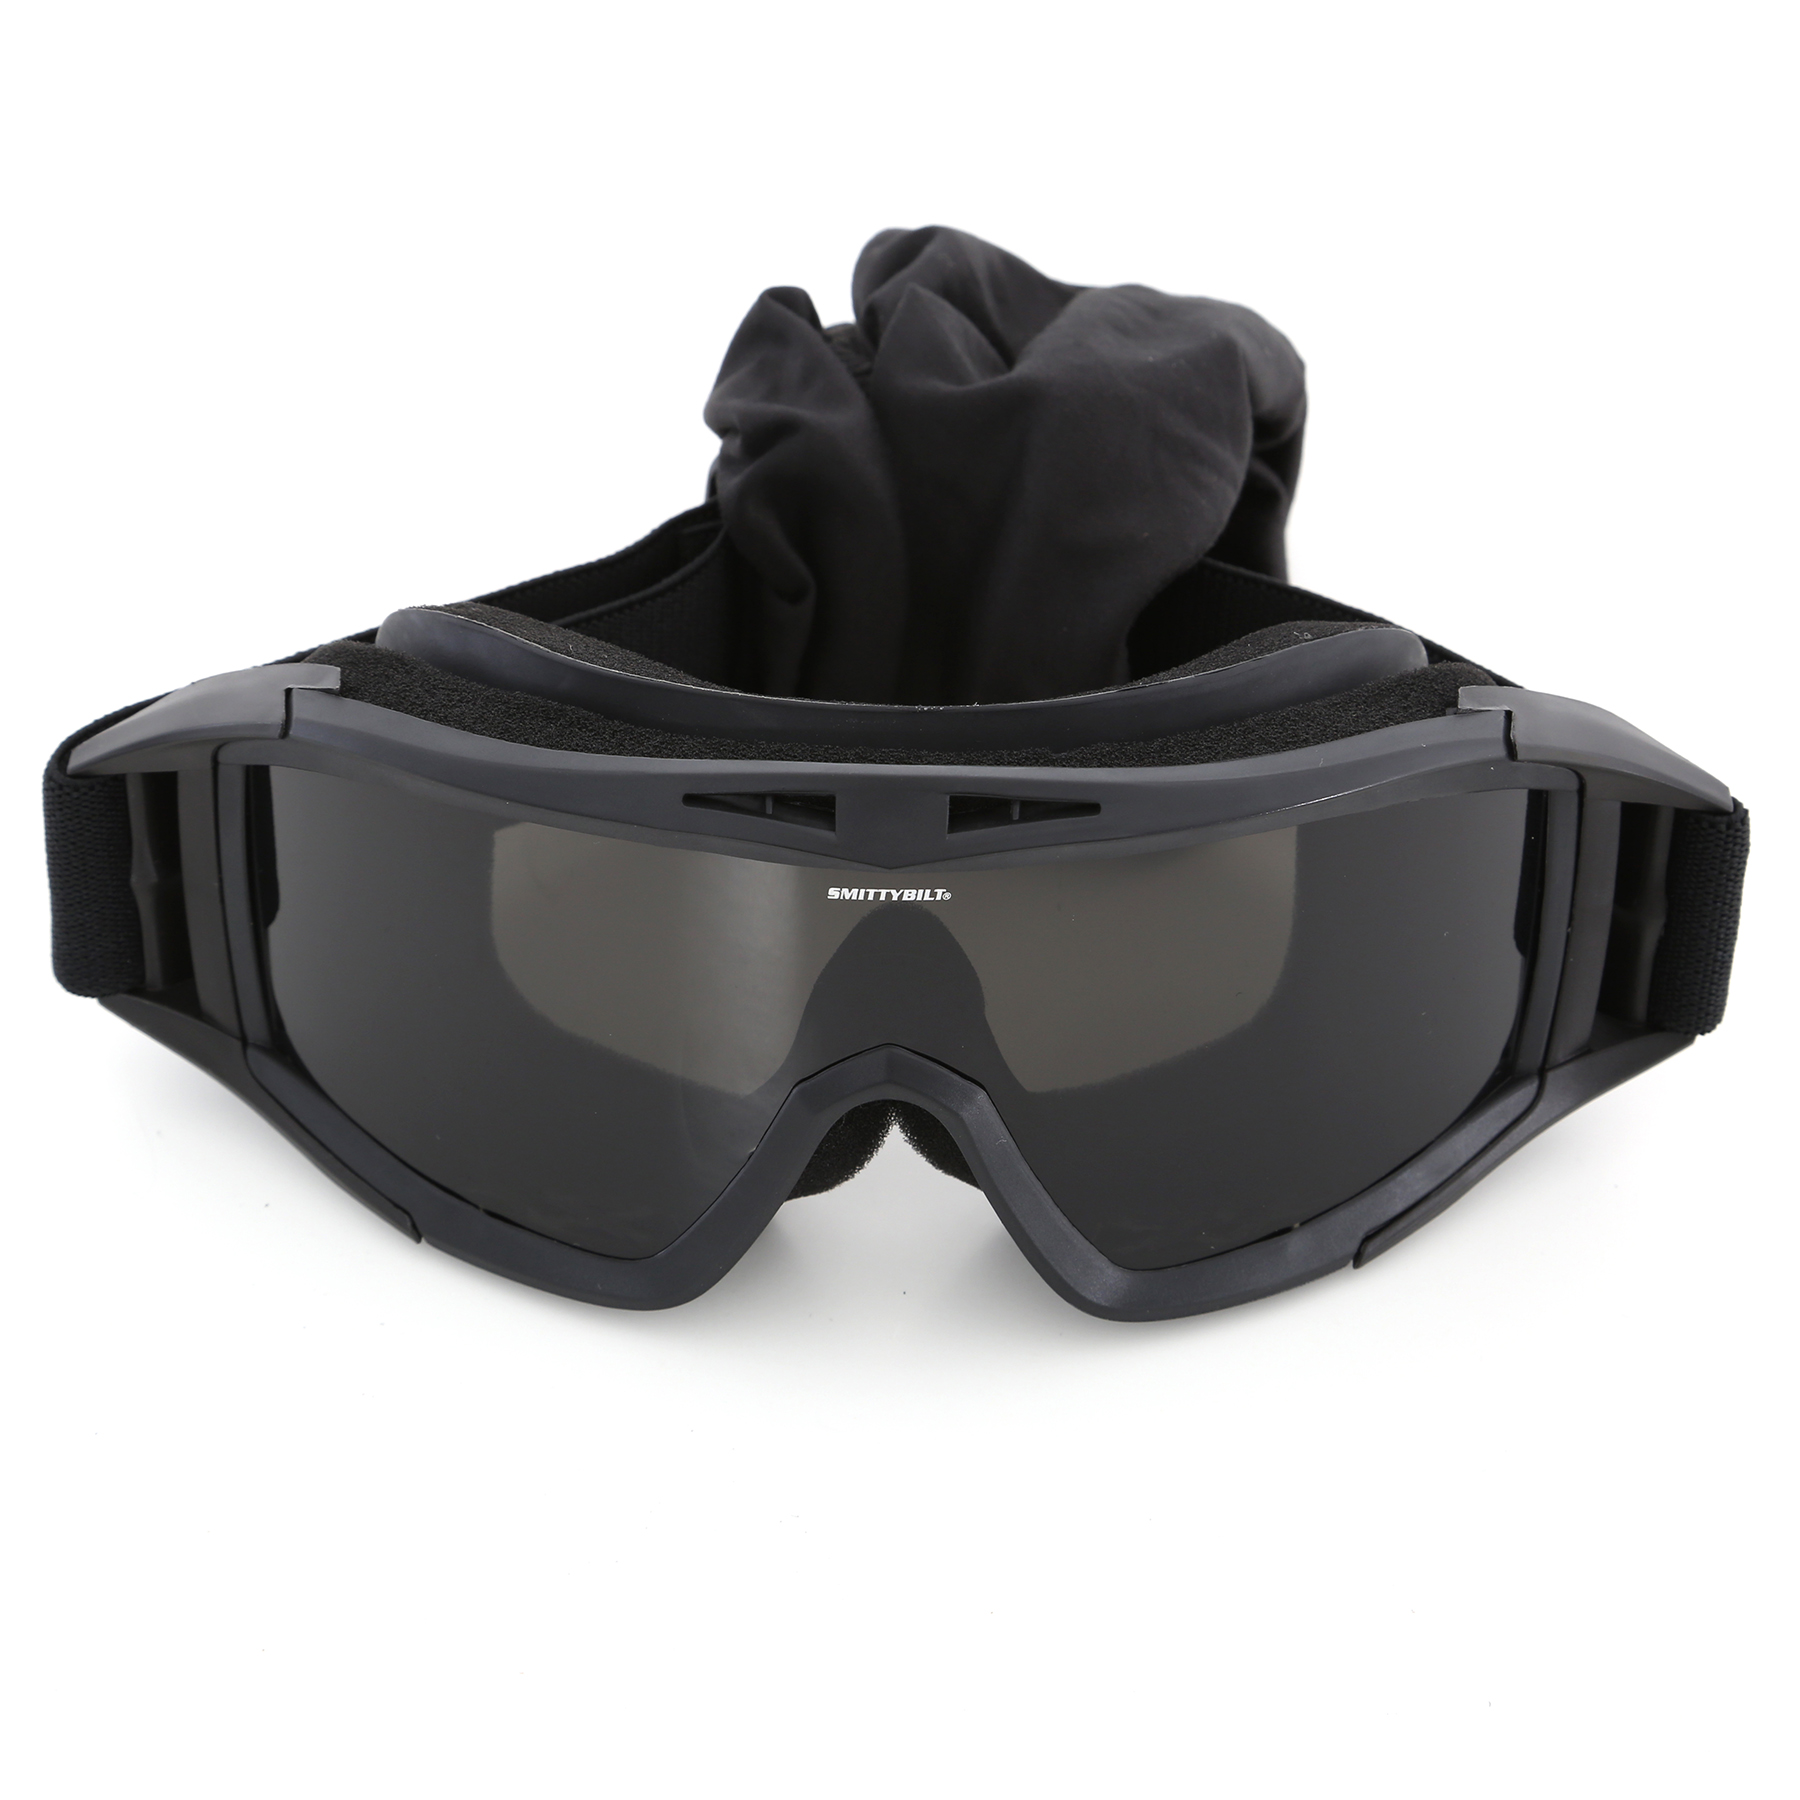 Smittybilt 1504 Protective Goggles Protective Goggles